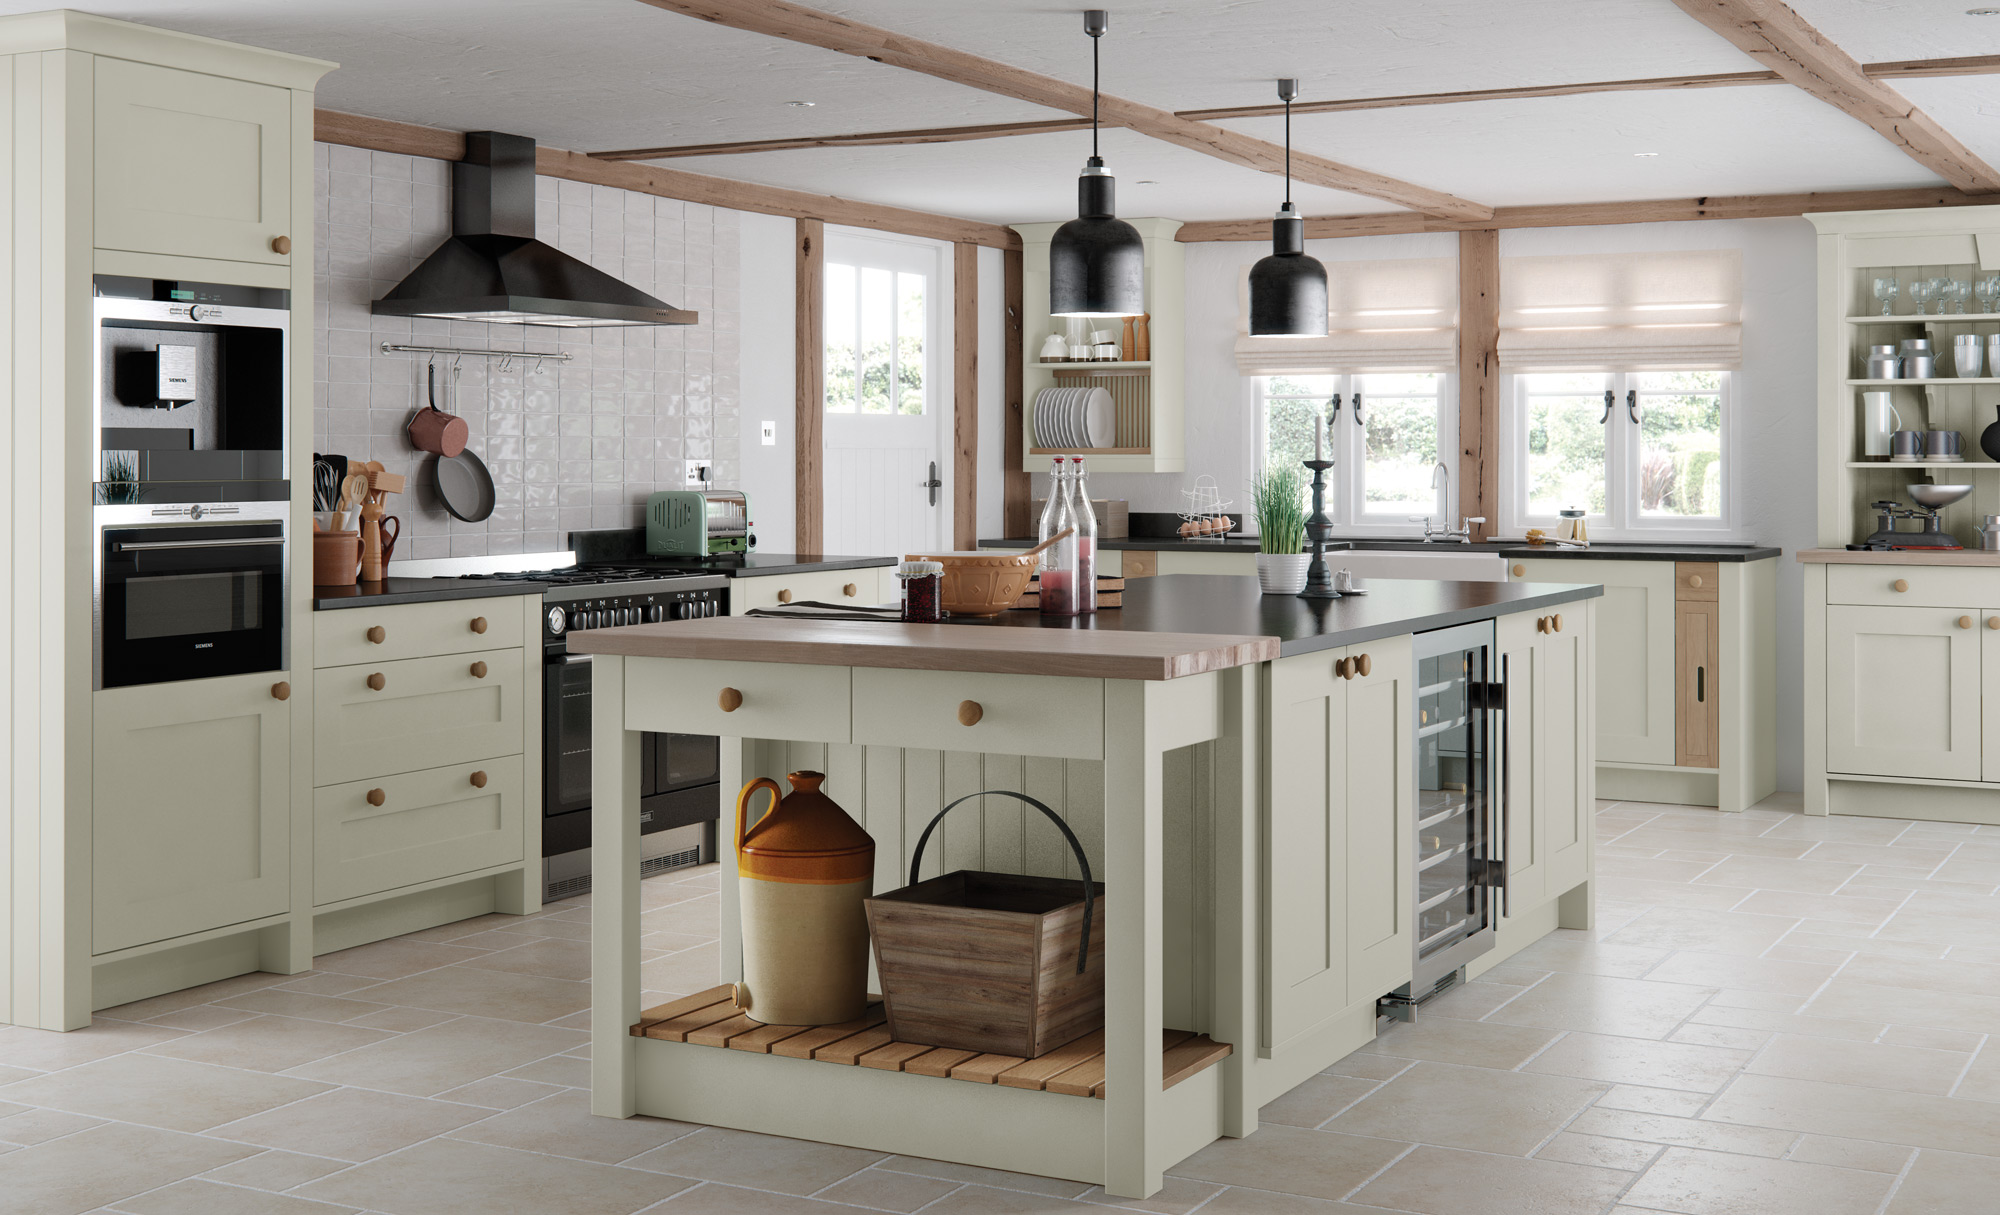 Traditional Country Kitchen - Georgia Painted Mussel Kitchen - Kitchen Design - Alan Kelly Kitchens - Waterford